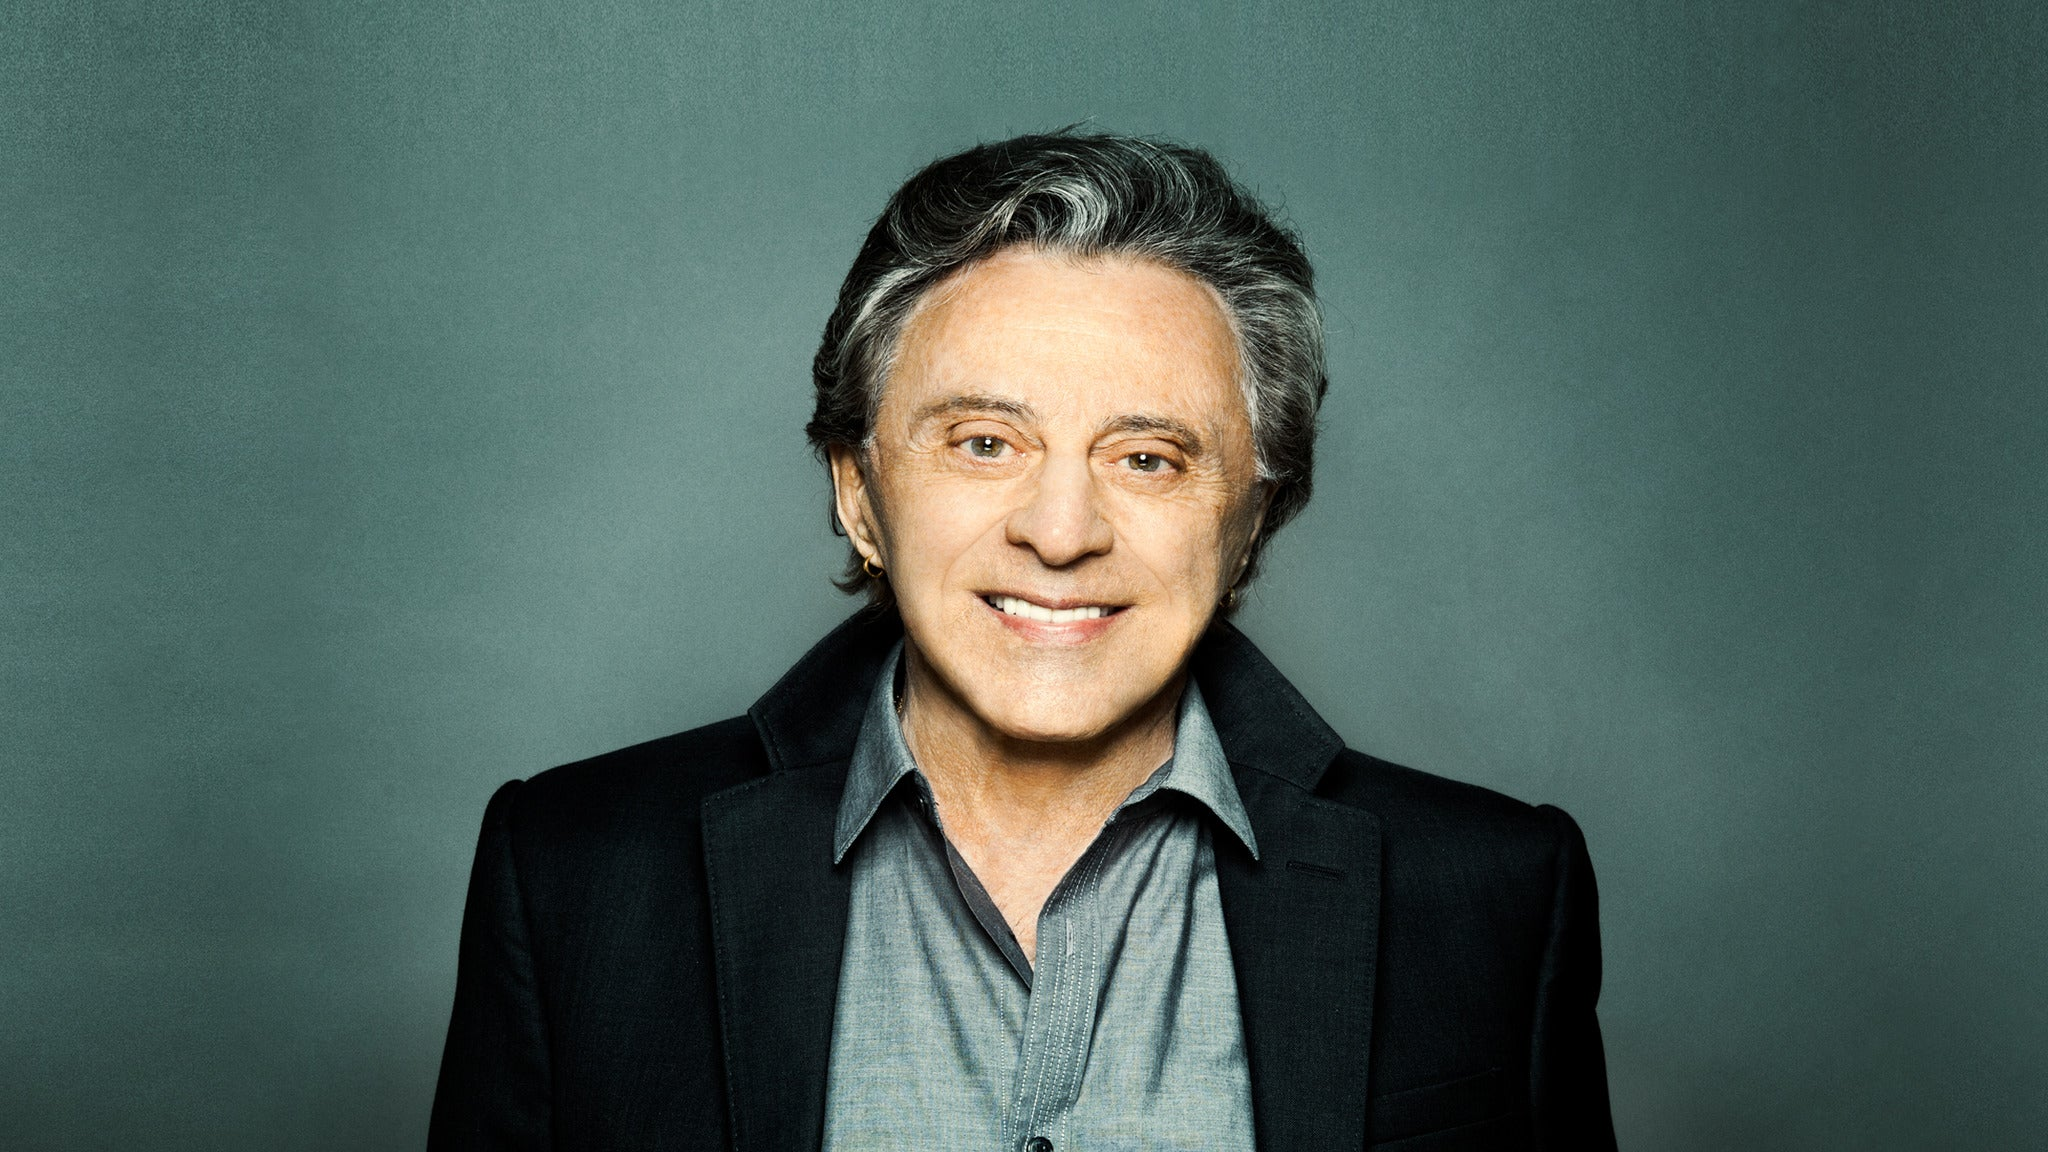 Frankie Valli & The Four Seasons at Macon City Auditorium